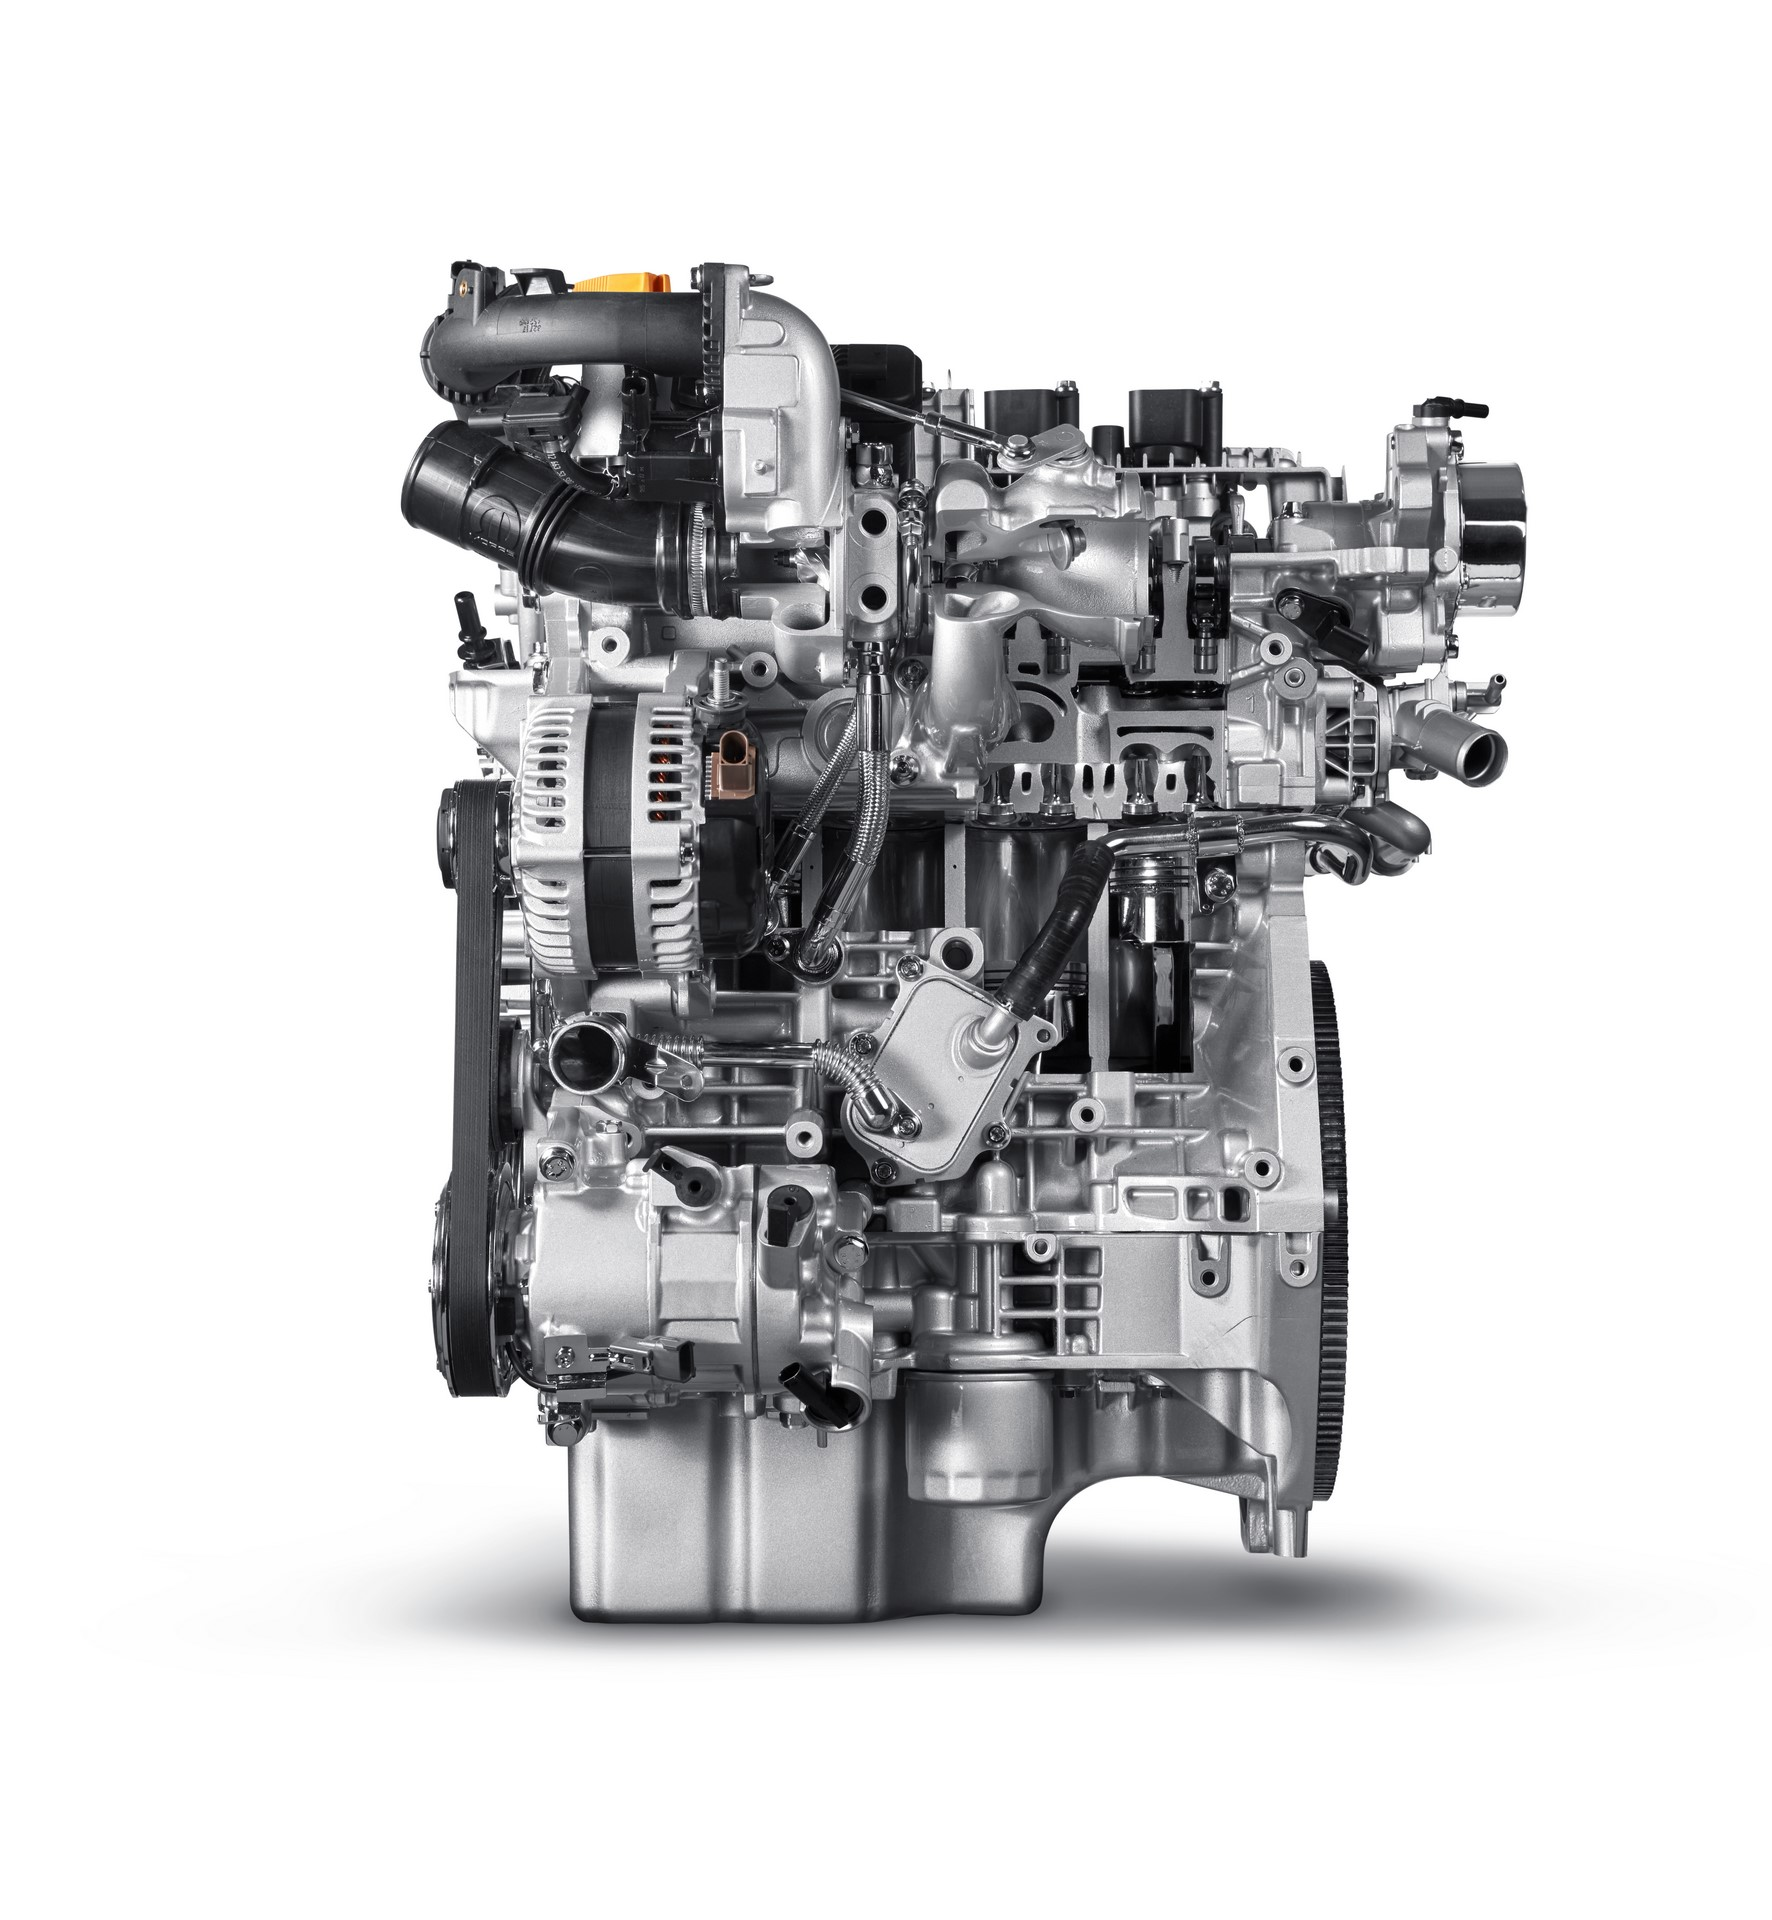 New-13L-Turbo-4-cylinder-150HP_03